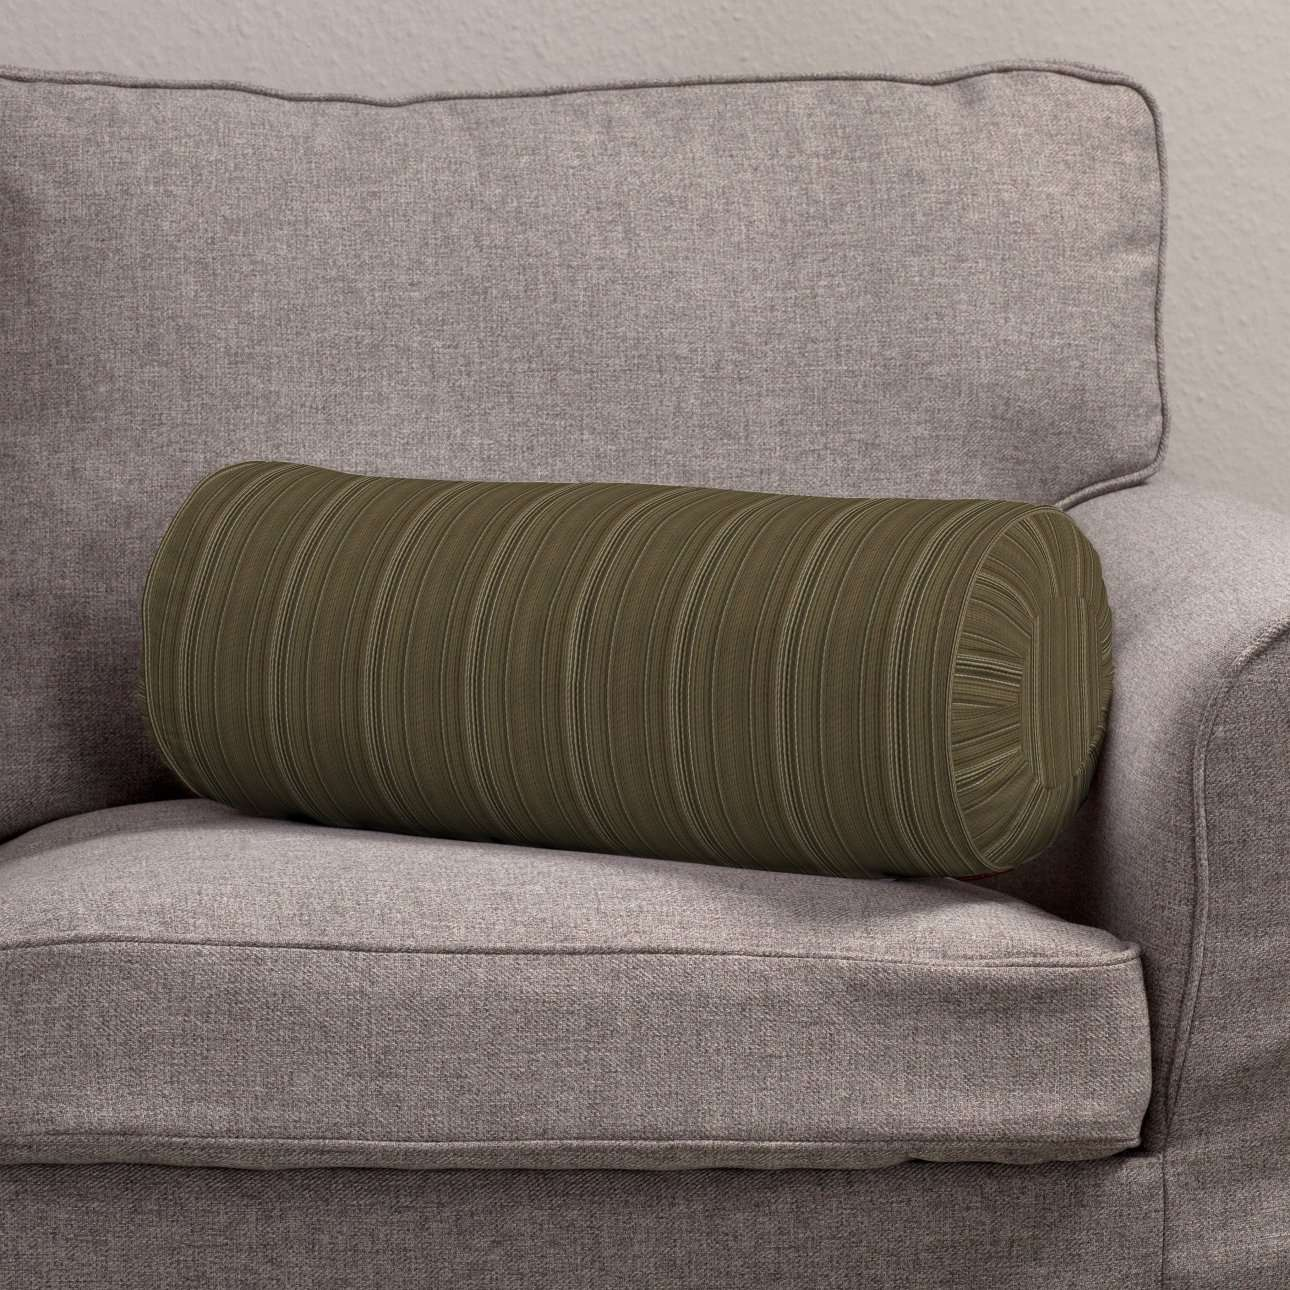 Bolster cushion with pleats in collection SALE, fabric: 411-53